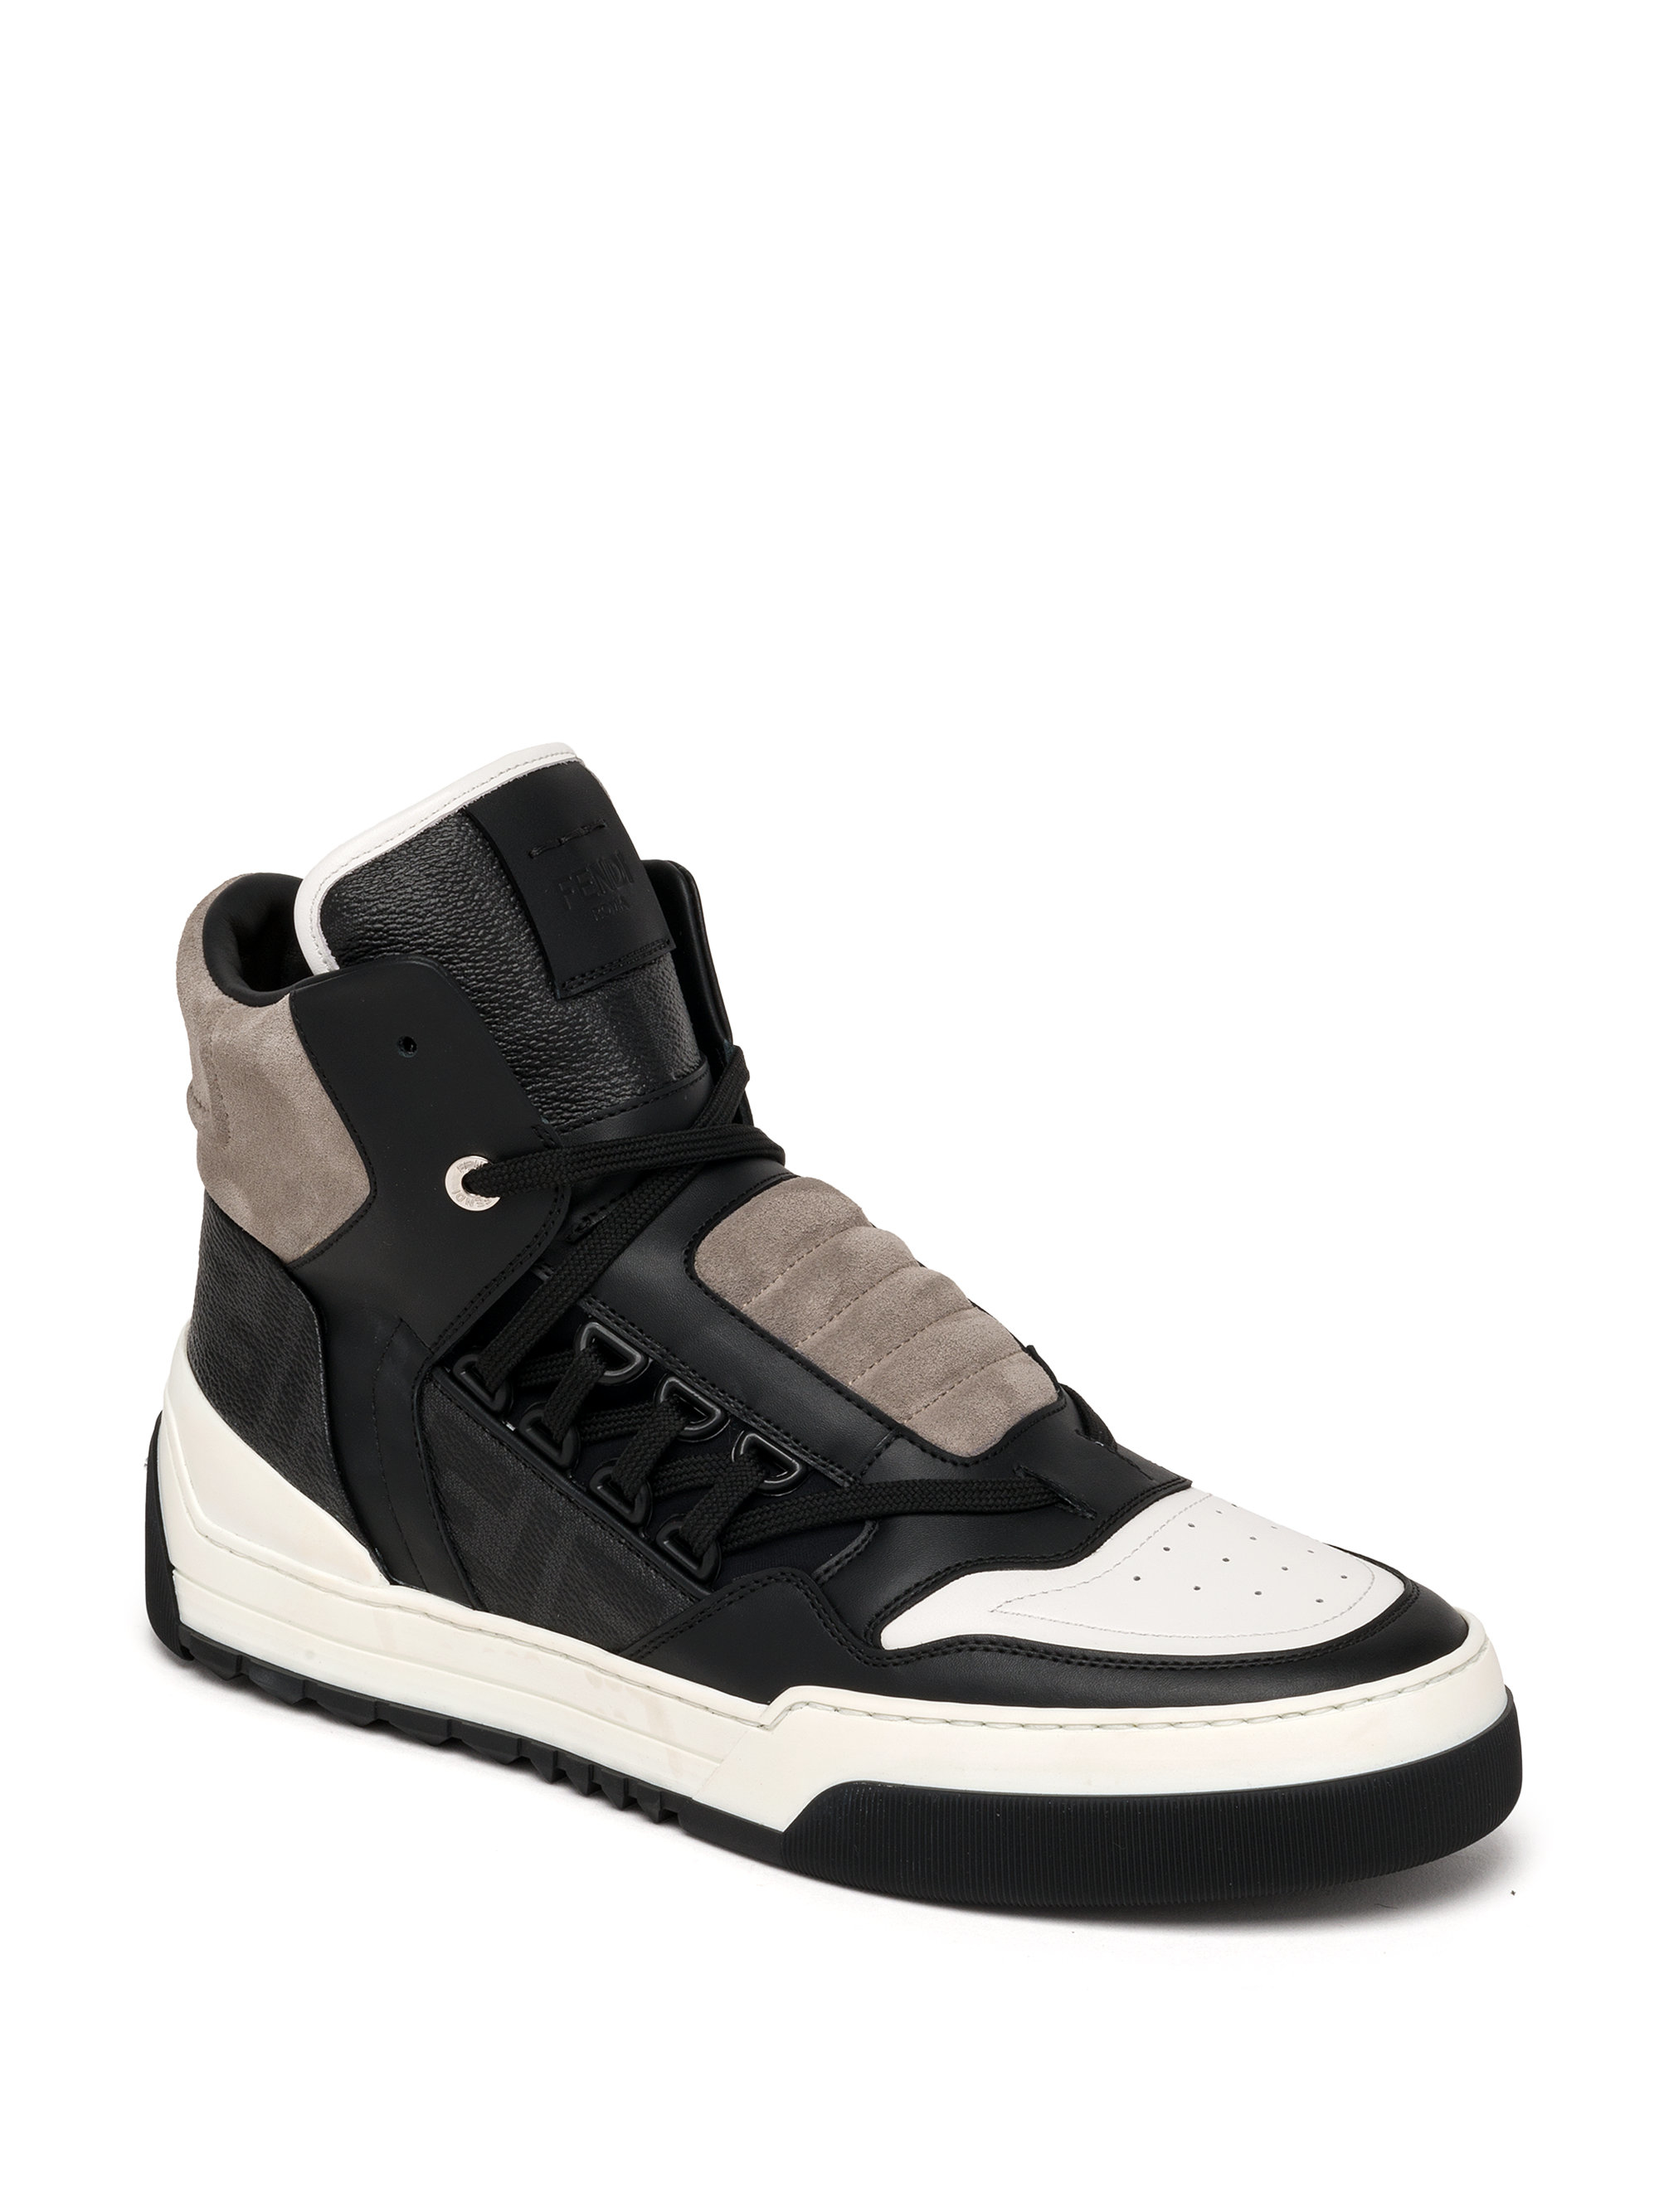 lyst fendi zucca paneled high top sneakers in black for men. Black Bedroom Furniture Sets. Home Design Ideas